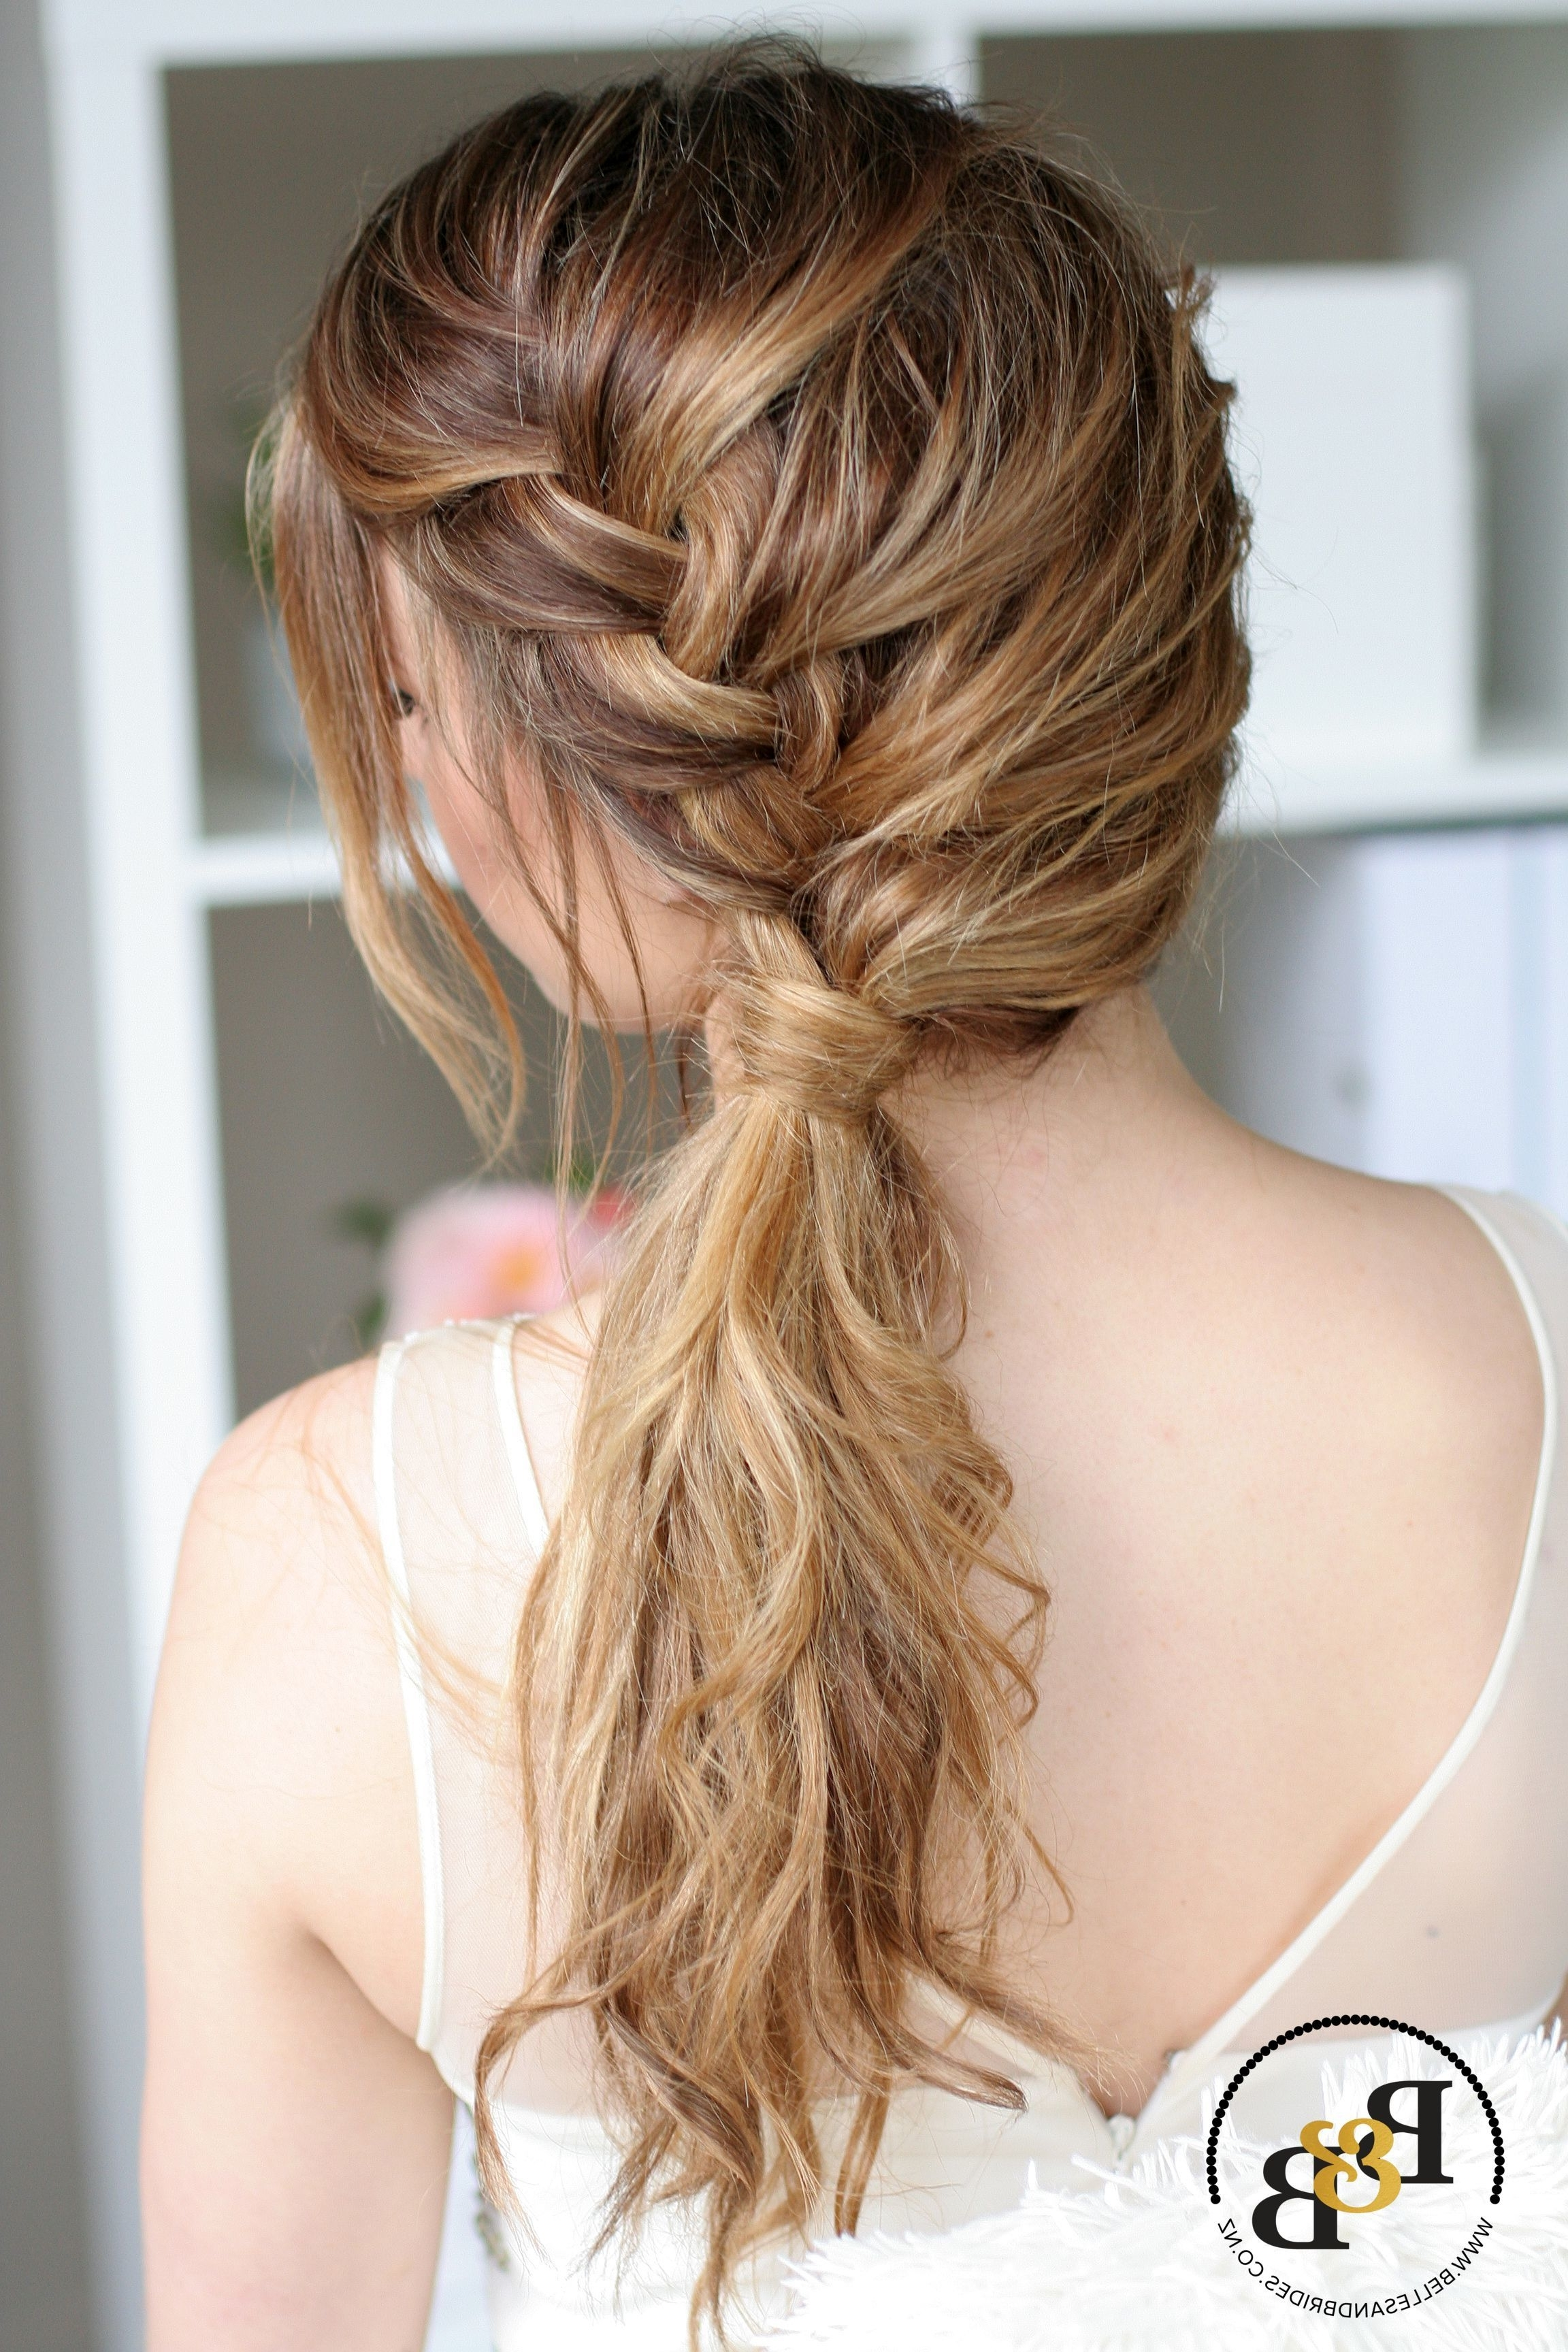 Famous Wedding Hairstyles For Bridesmaid Within Wedding Hair Down With Braid #bridesmaidhairwithbraid (View 6 of 15)